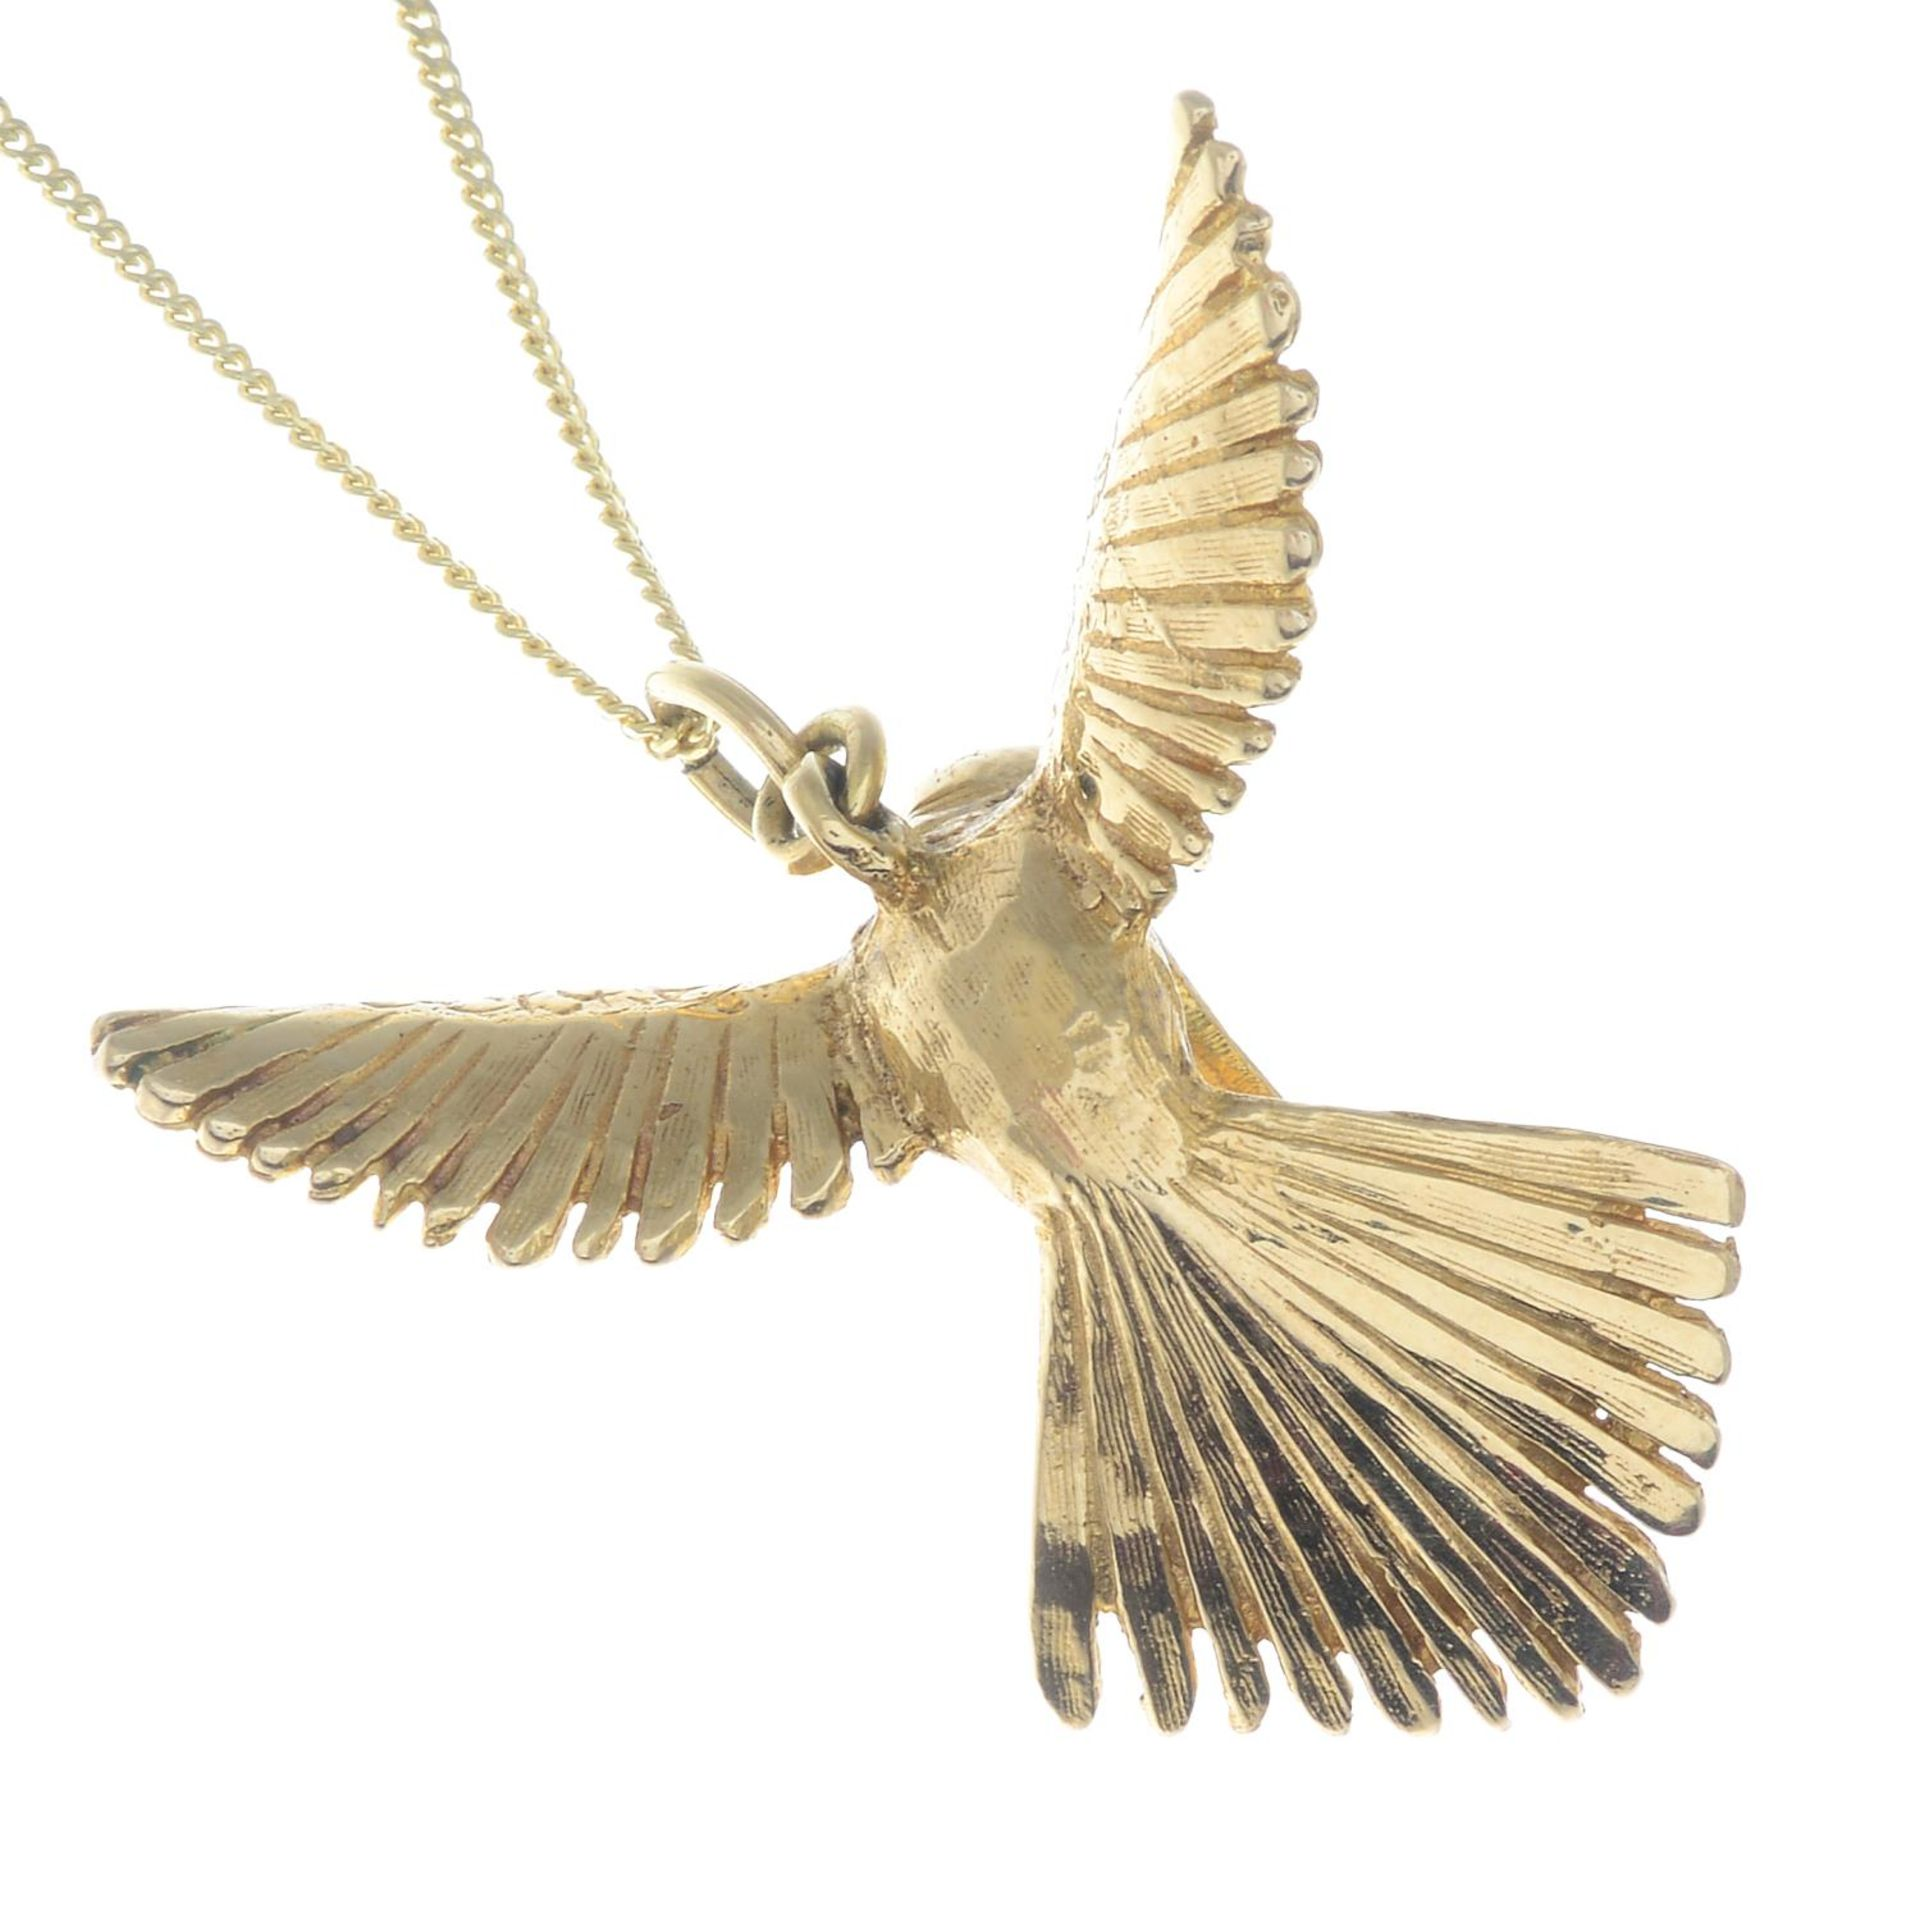 A pendant, depicting a textured hummingbird in flight, with 9ct gold chain. - Bild 3 aus 3